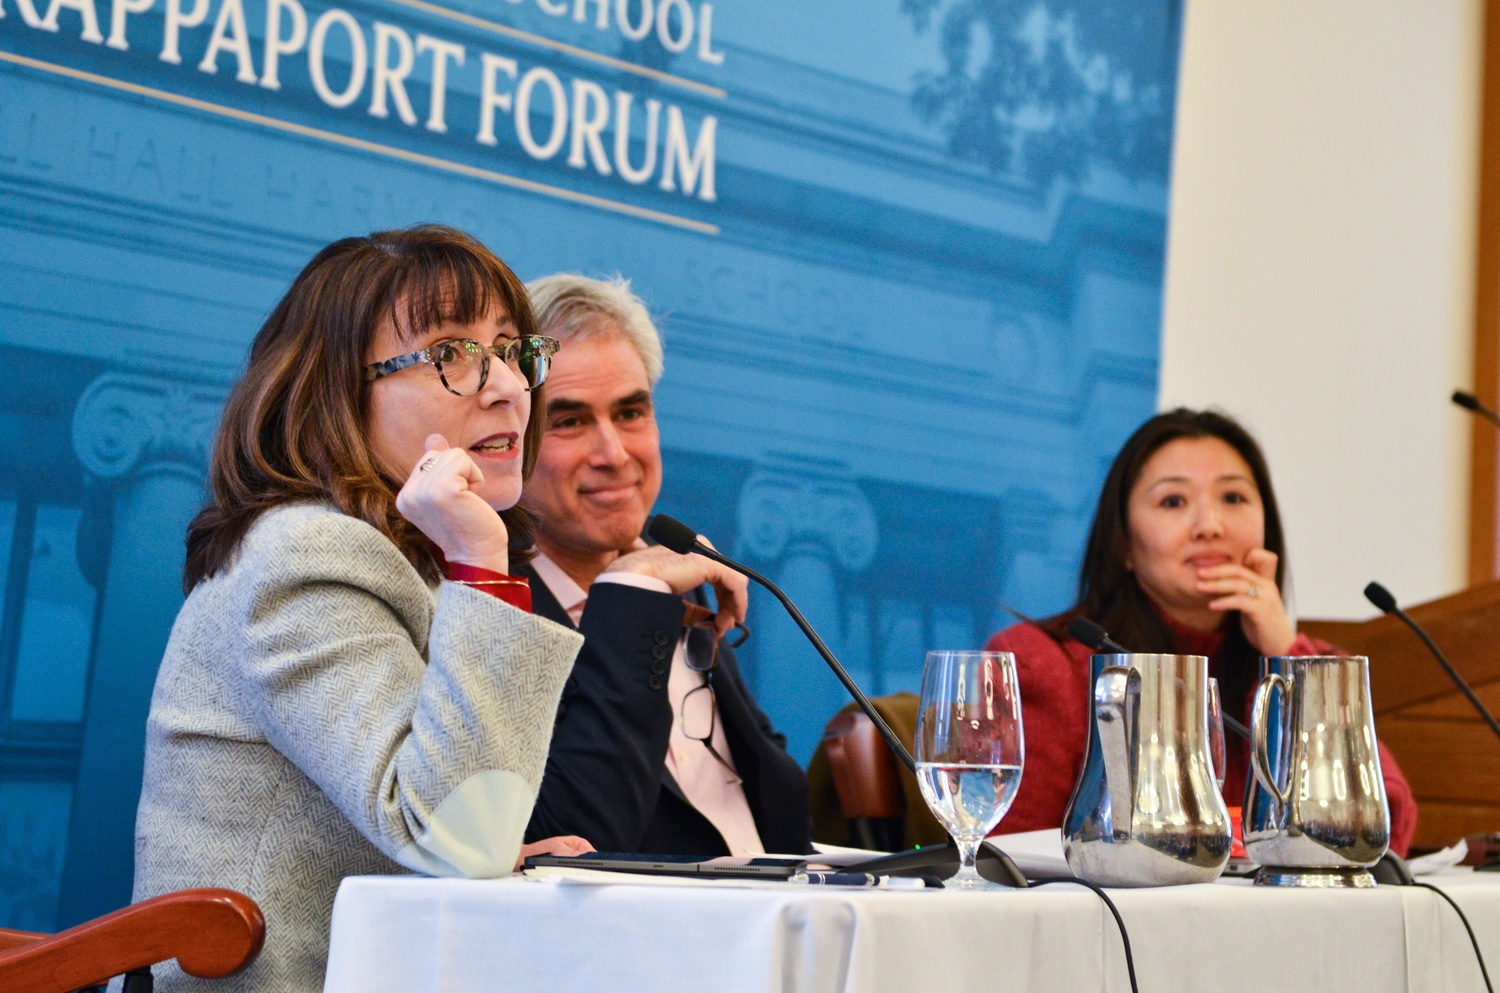 Lisa Feldman Barrett, Professor of Psychology at Northeastern University, discussed campus speech at the inaugural event of the Harvard Law School Rappaport Forum Friday with Jonathan Haidt, Professor of Ethical Leadership at NYU Stern School of Business.